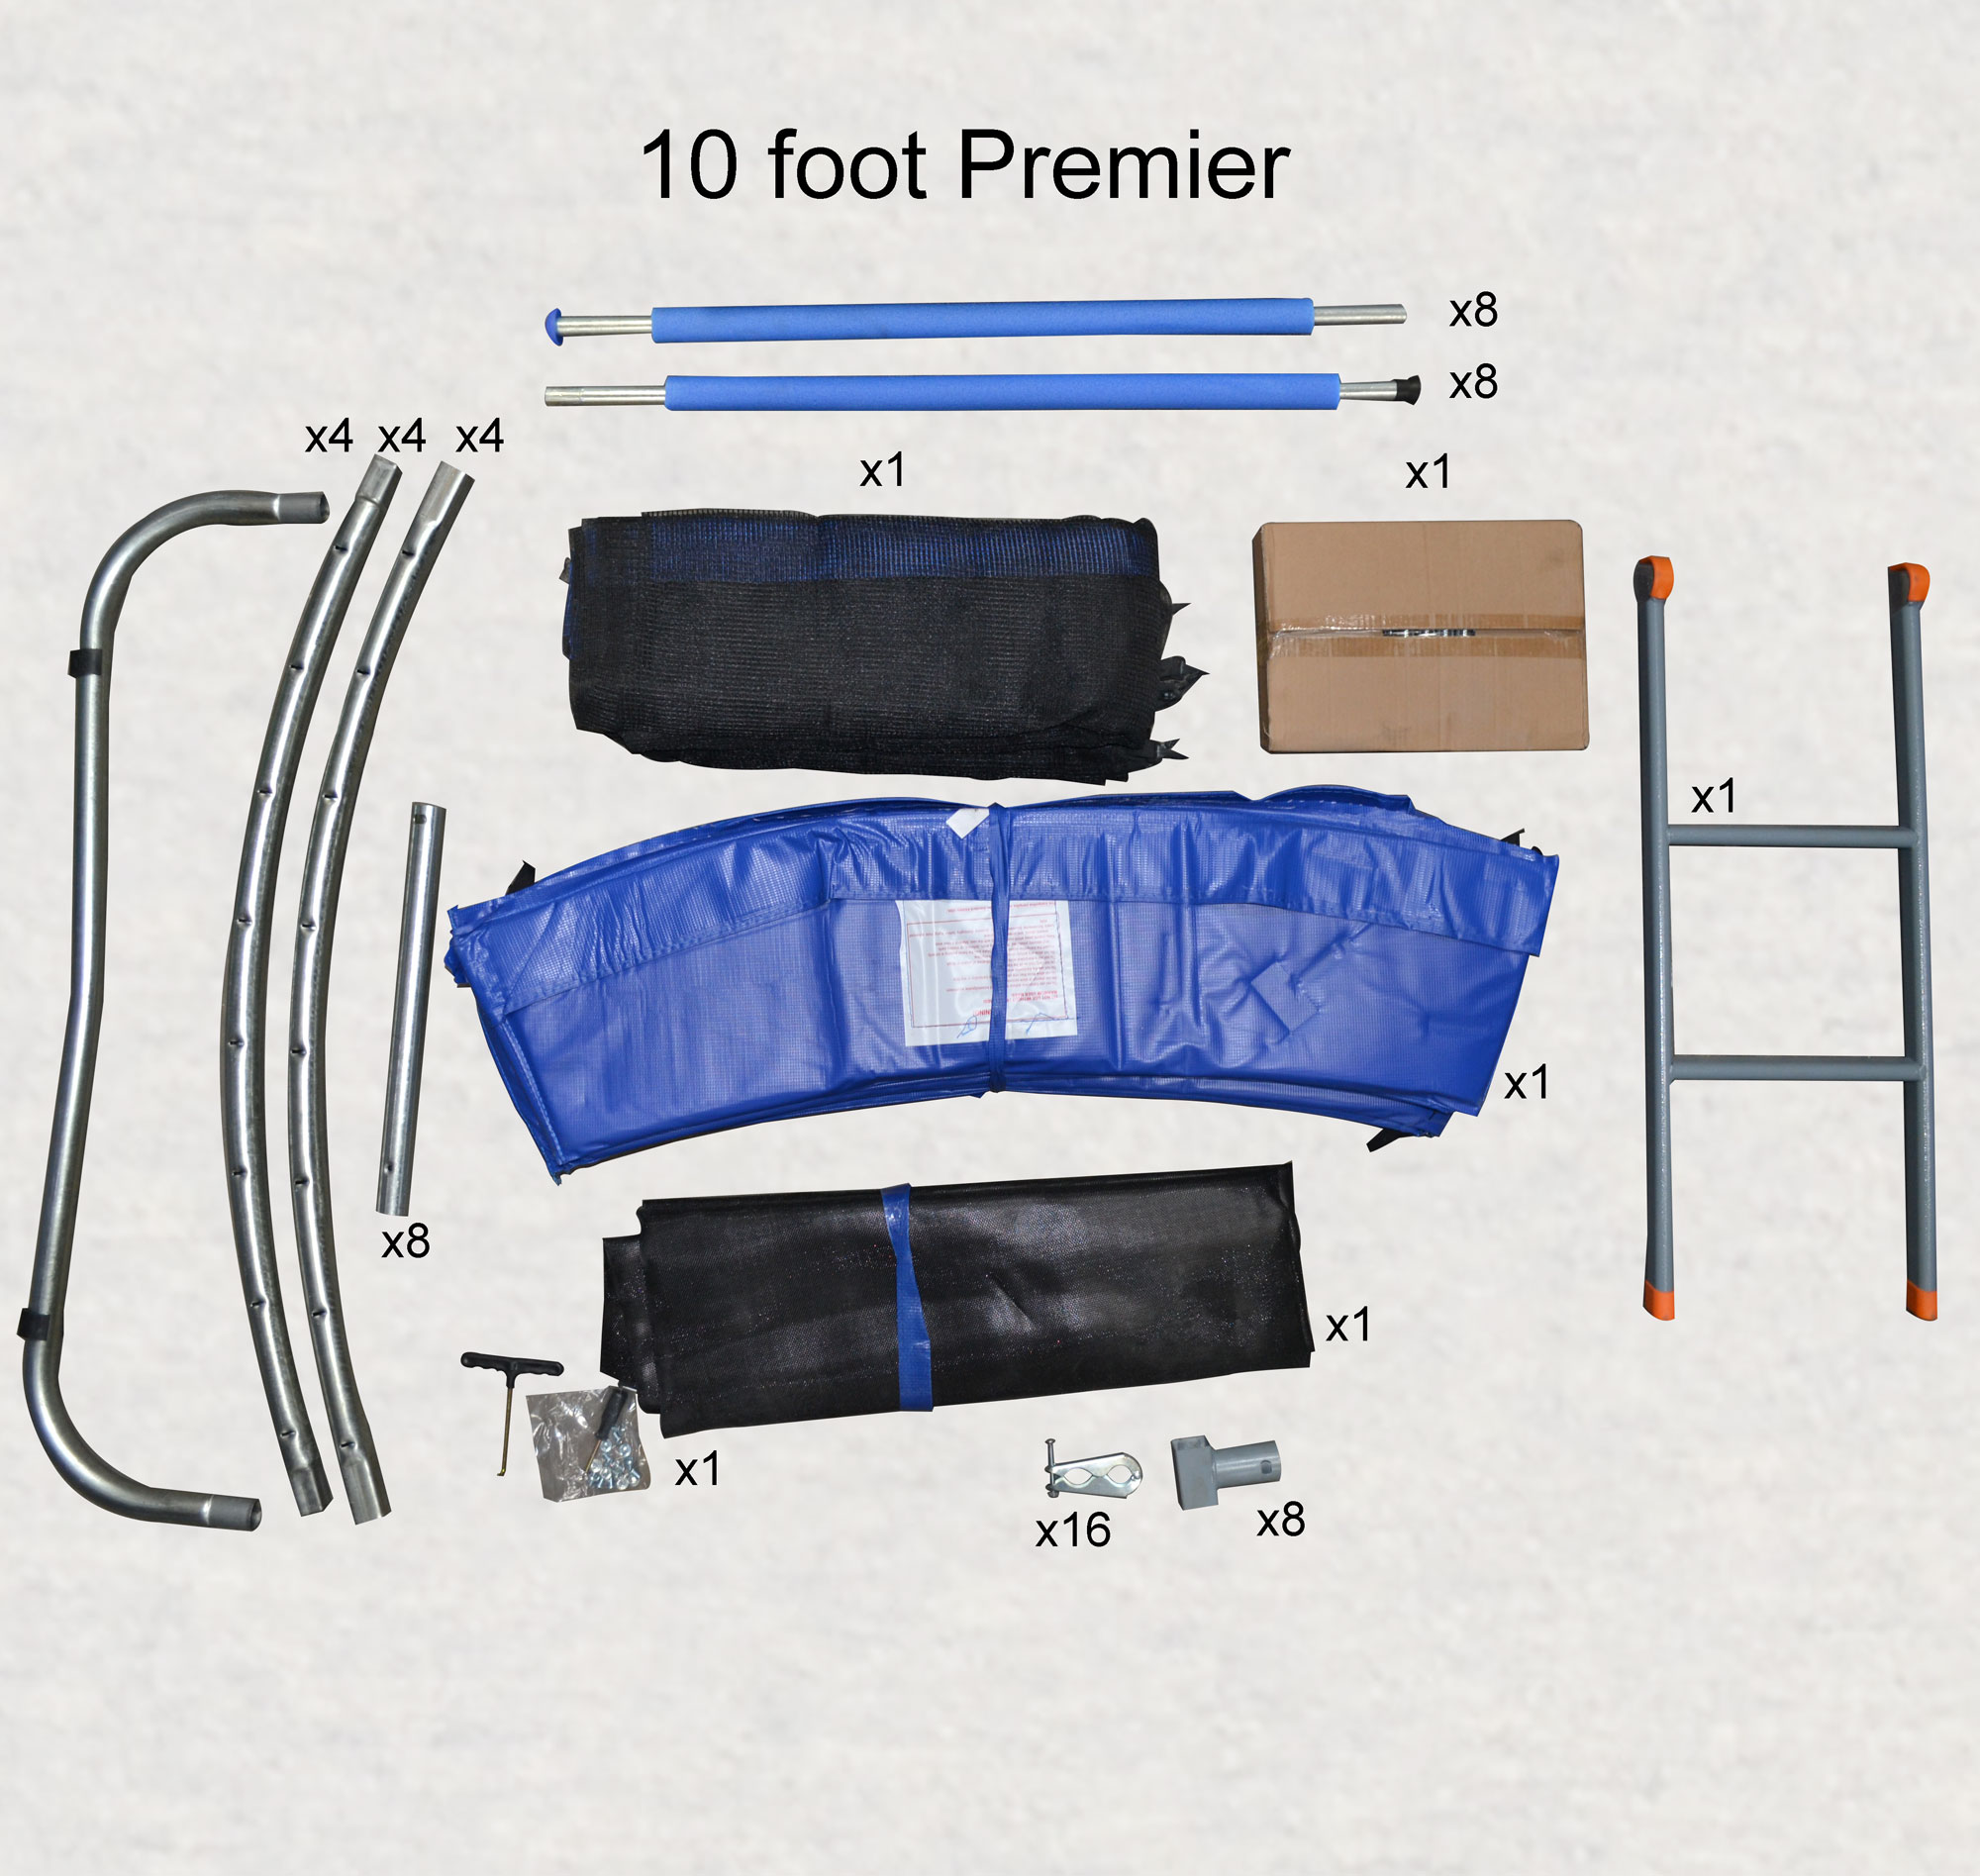 10ft Premier Trampoline Box Contents